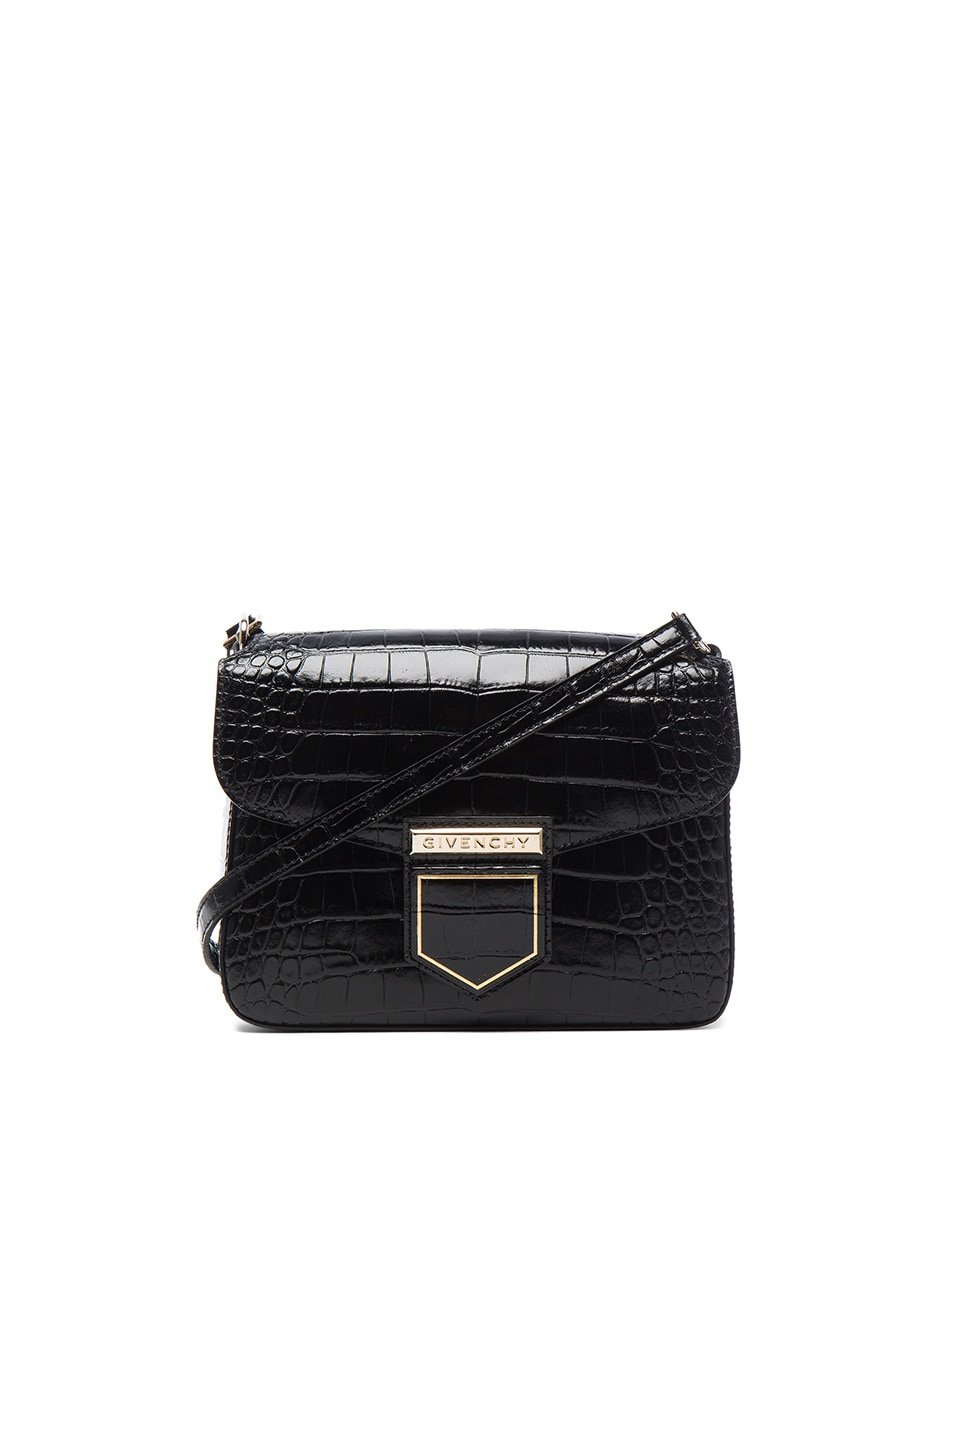 Image 1 of Givenchy Small Crocodile Embossed Leather Nobile in Black